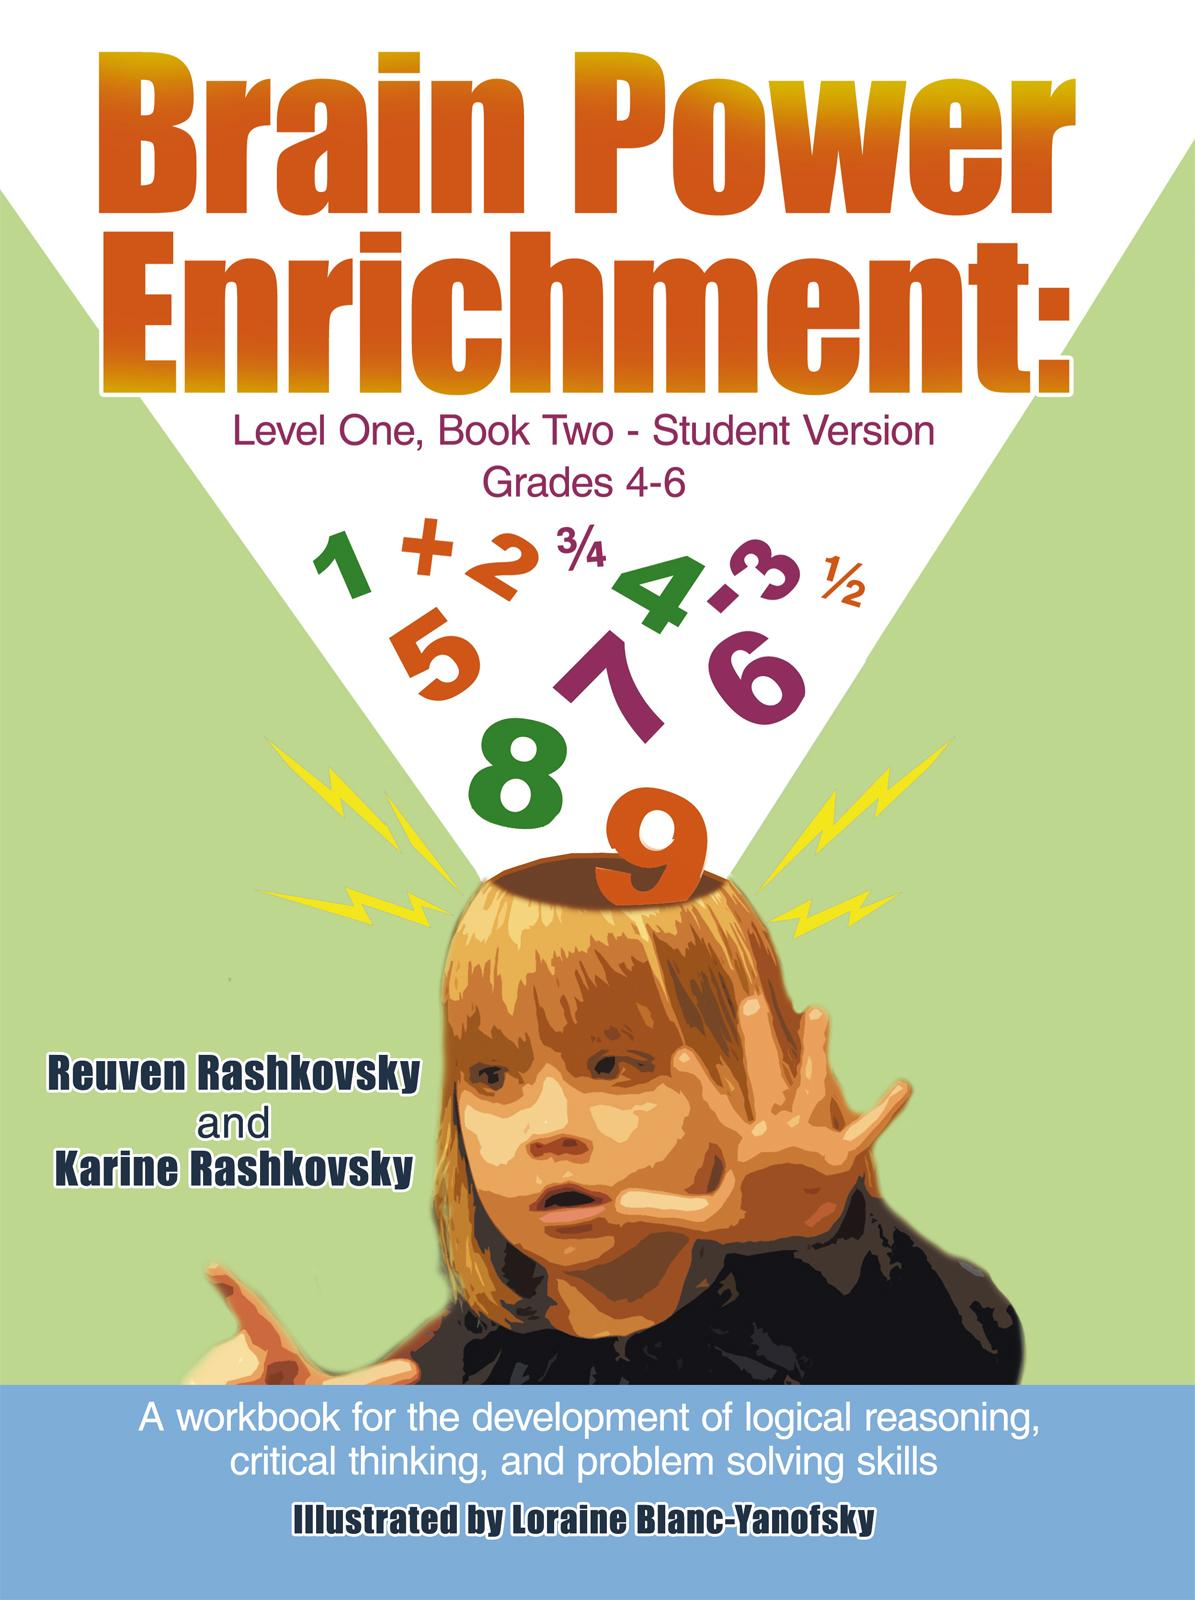 Brain Power Enrichment: Level One, Book Two-Student Version Grades 4-6: A Workbook for the Development of Logical Reasoning, Critical Thinking EB9781463414443